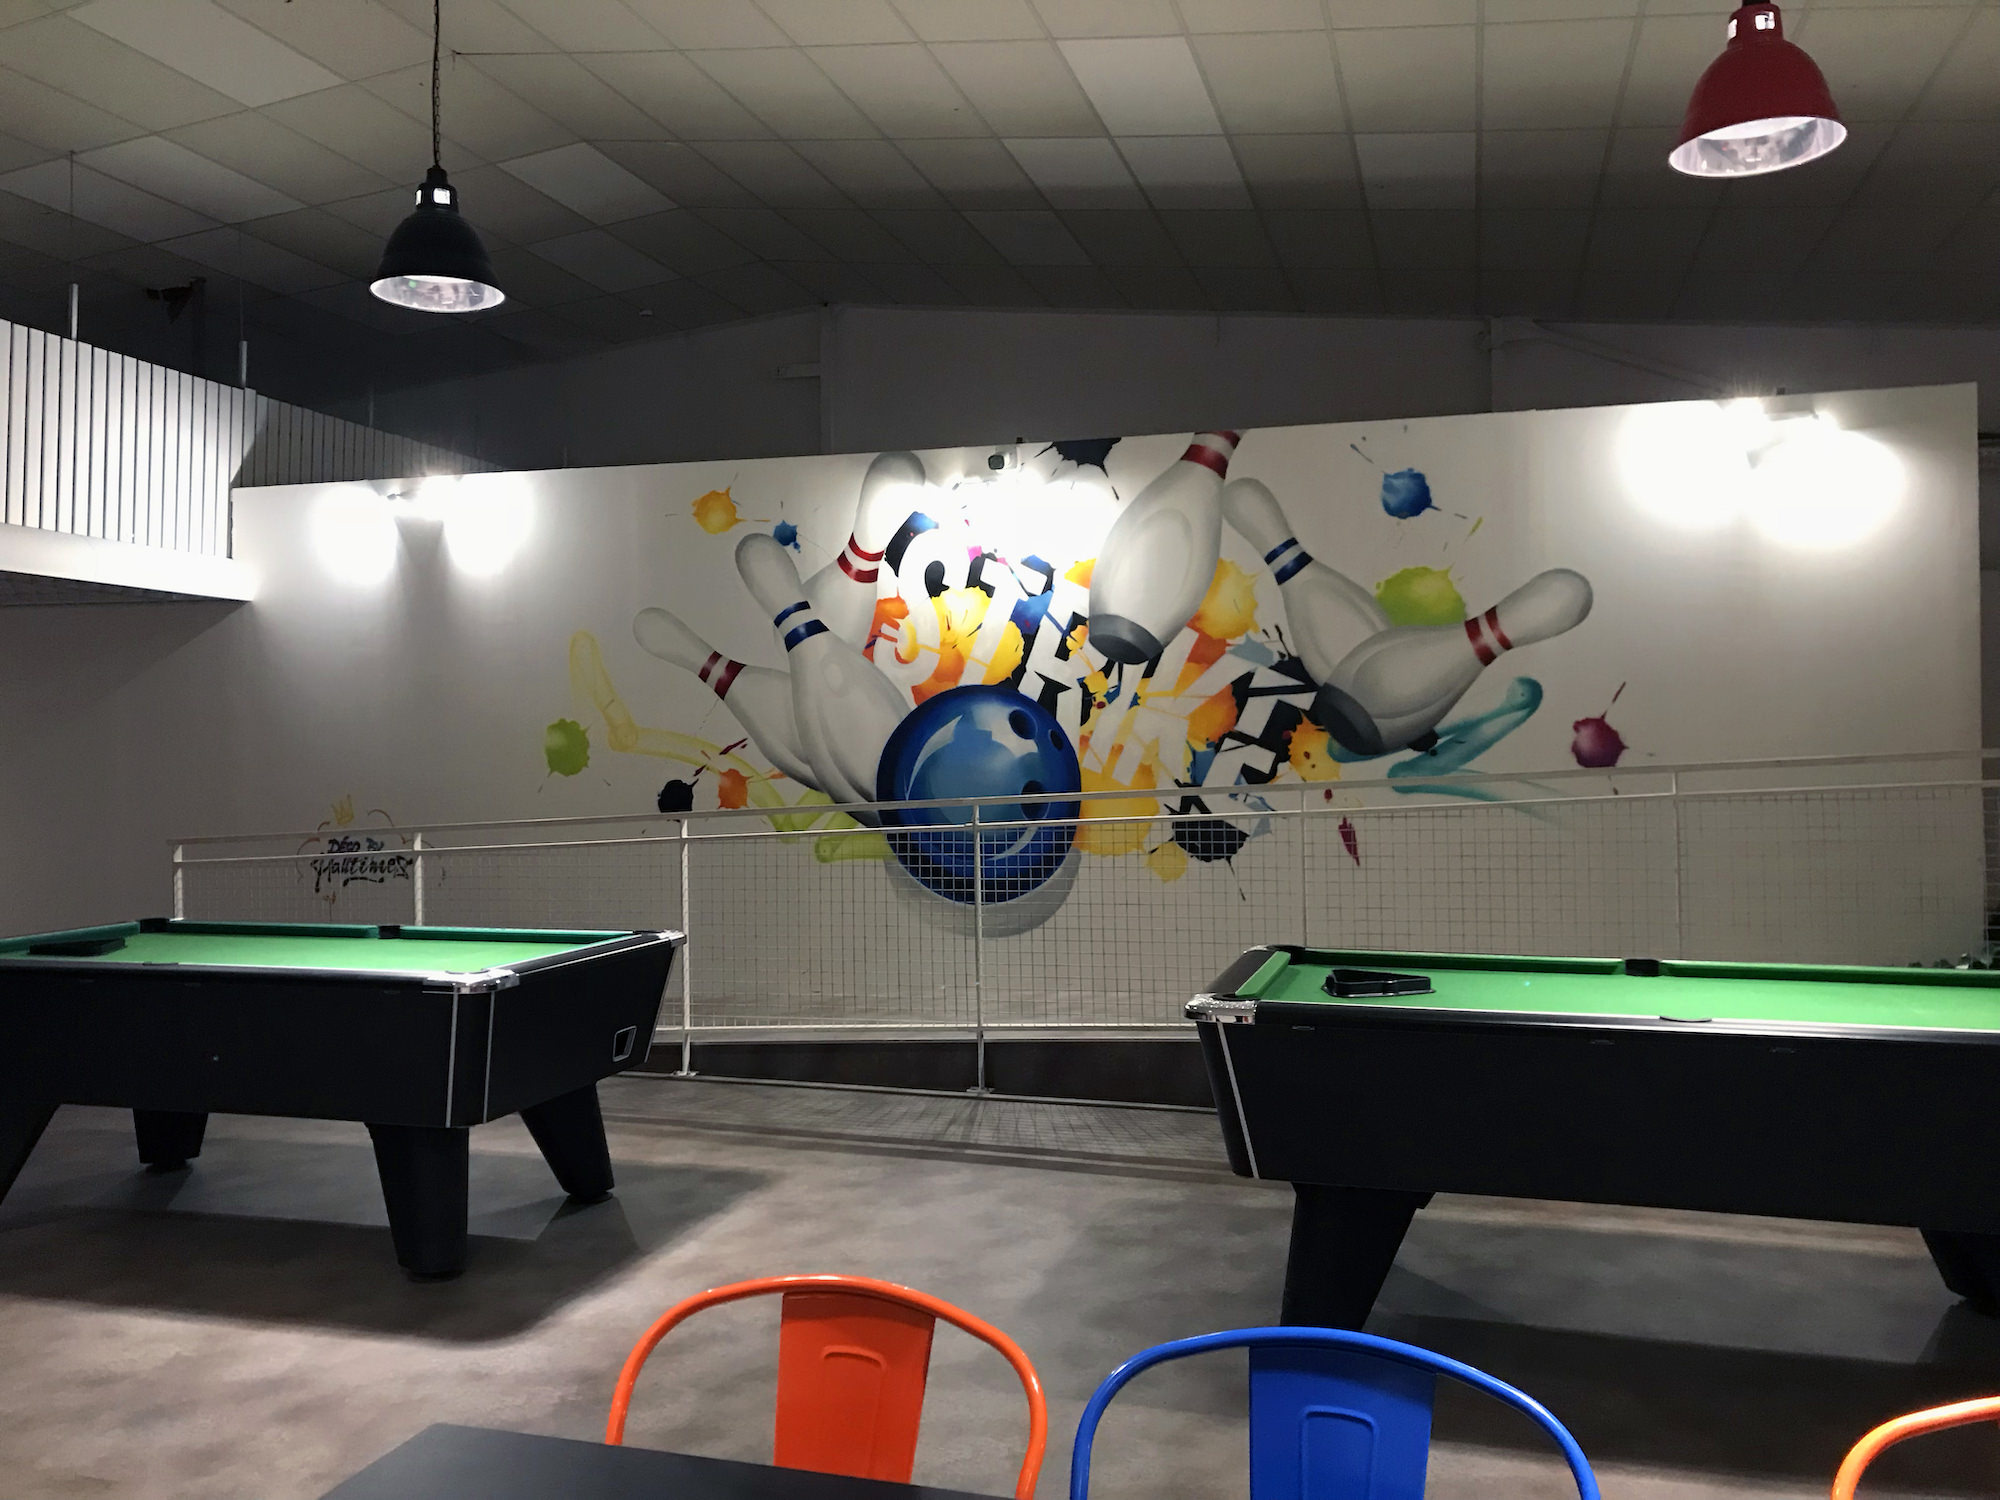 graffiti-jeux-bowling-decoration-fresque-toulouse